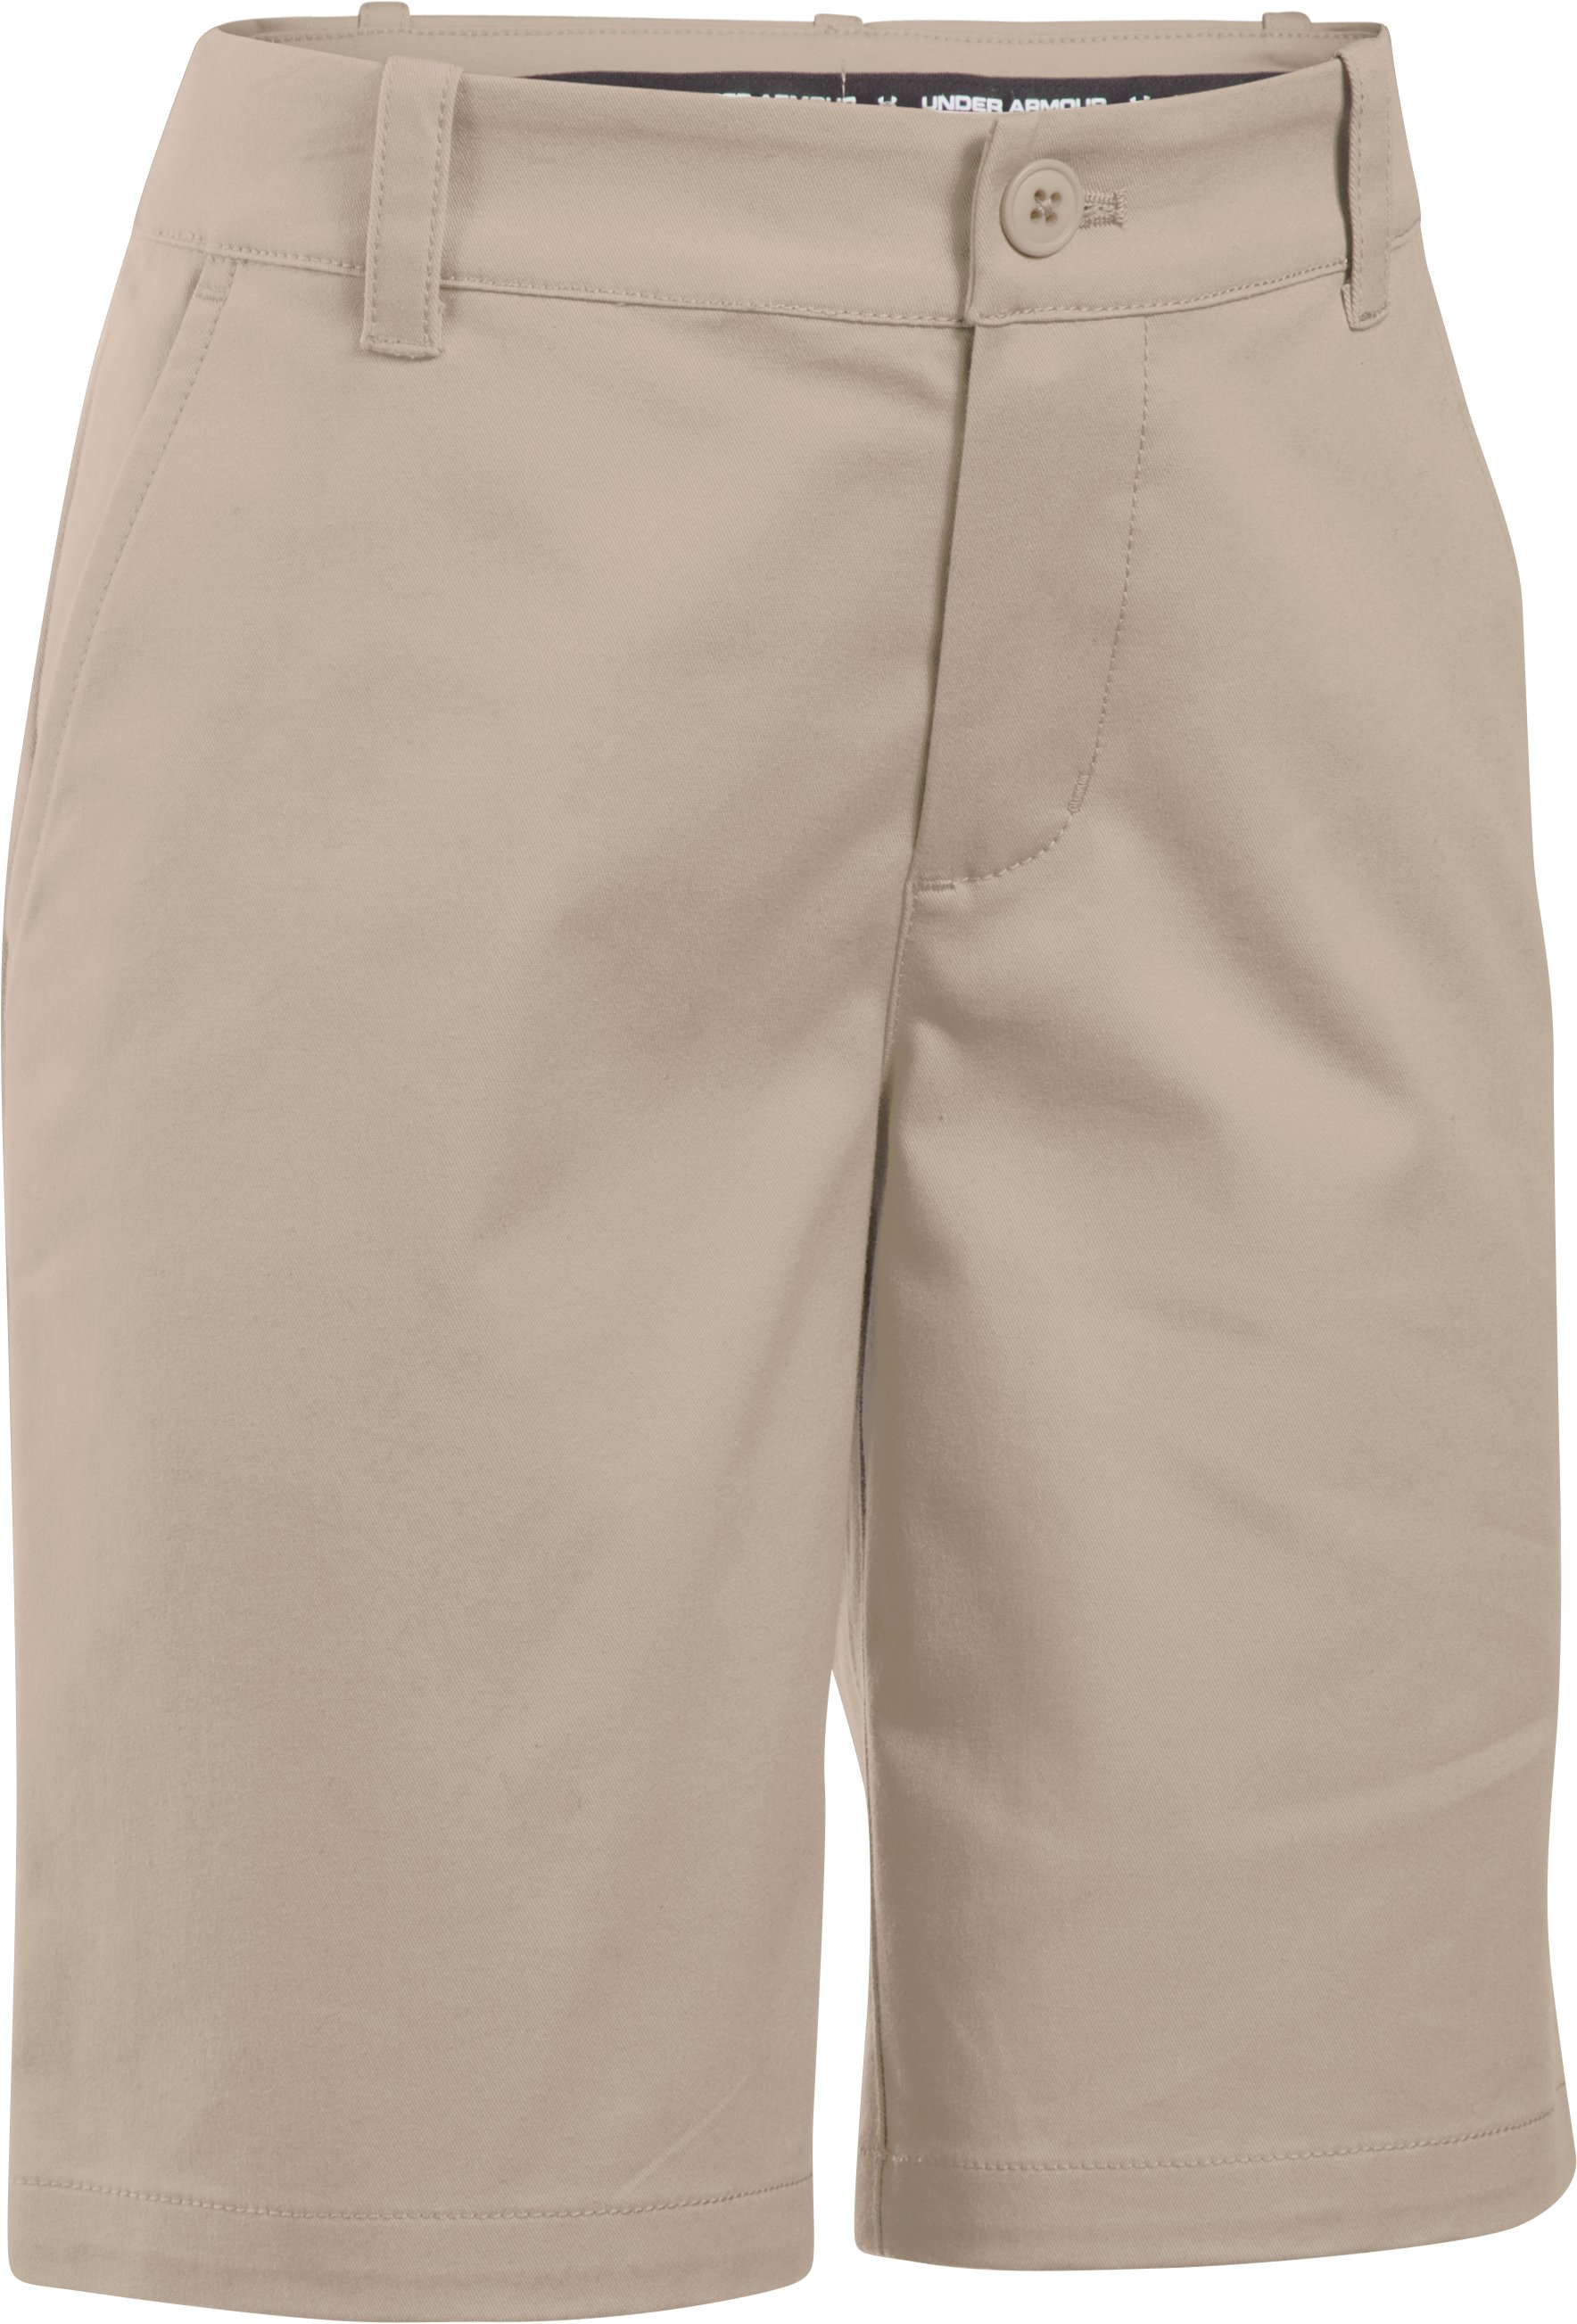 Girls' UA Uniform Chino Shorts, Desert Sand